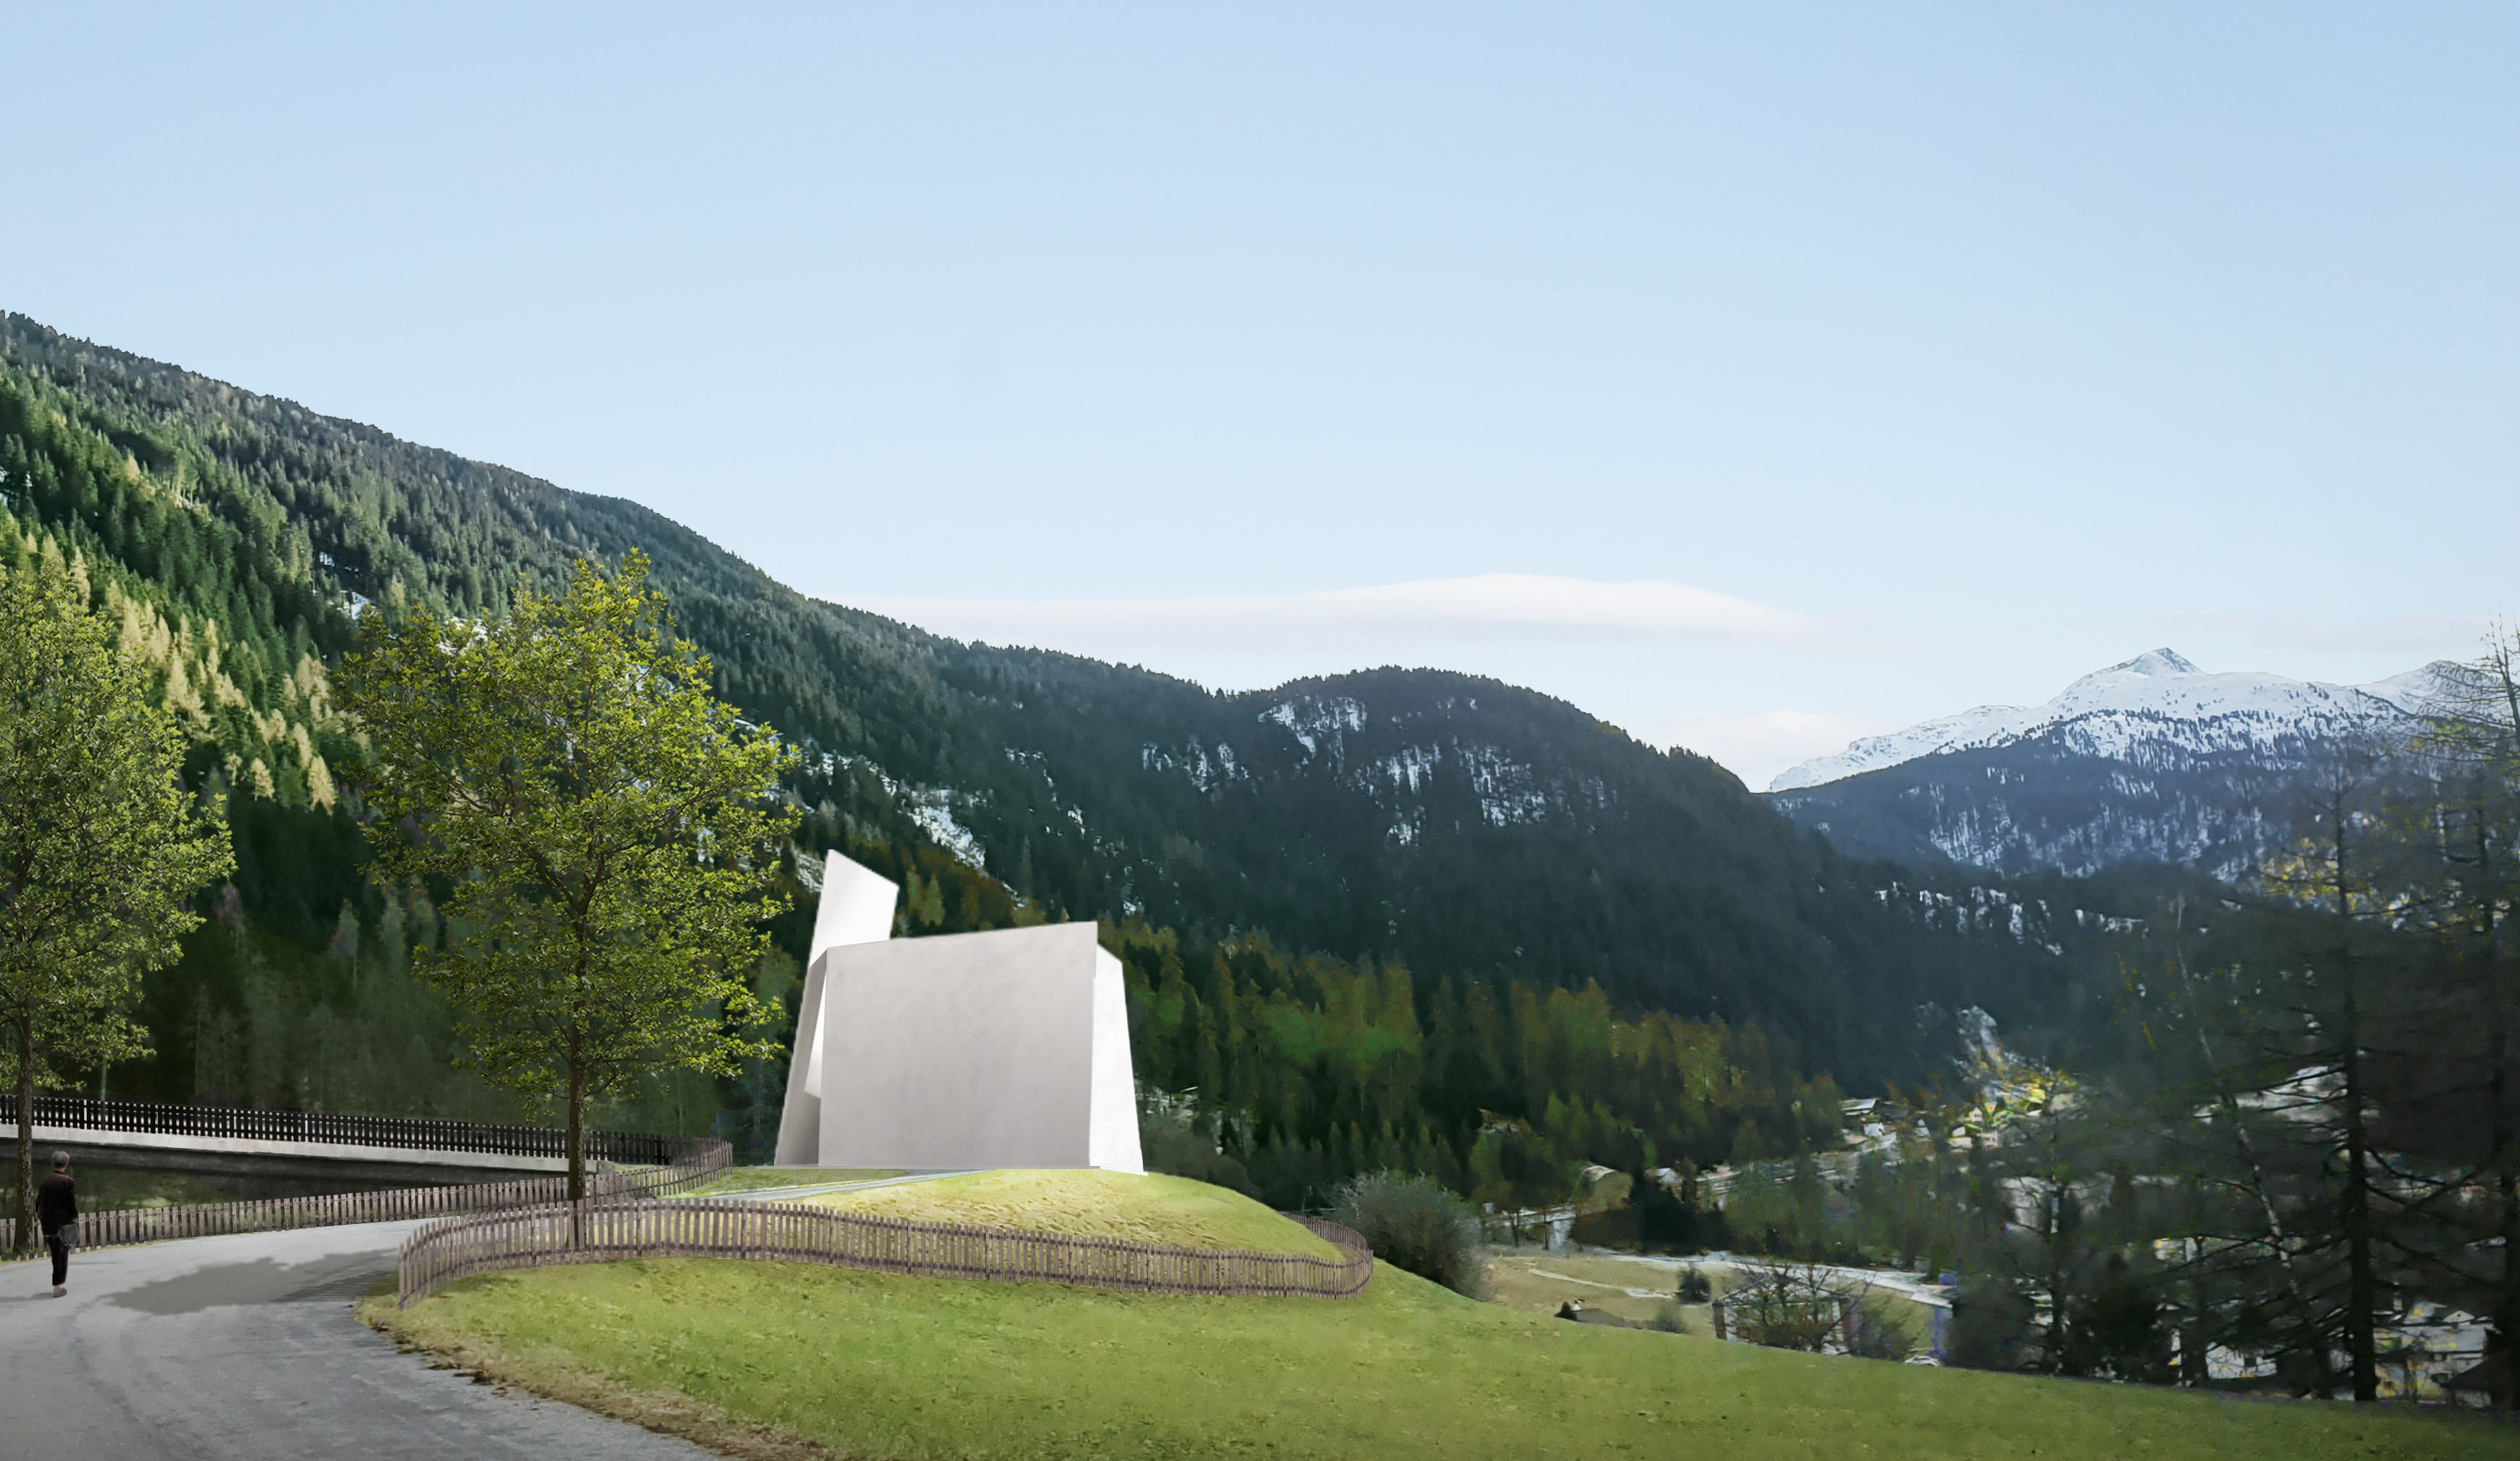 Autobahnkirche: The surprising rise of roadside chapels in Western Europe - quartz